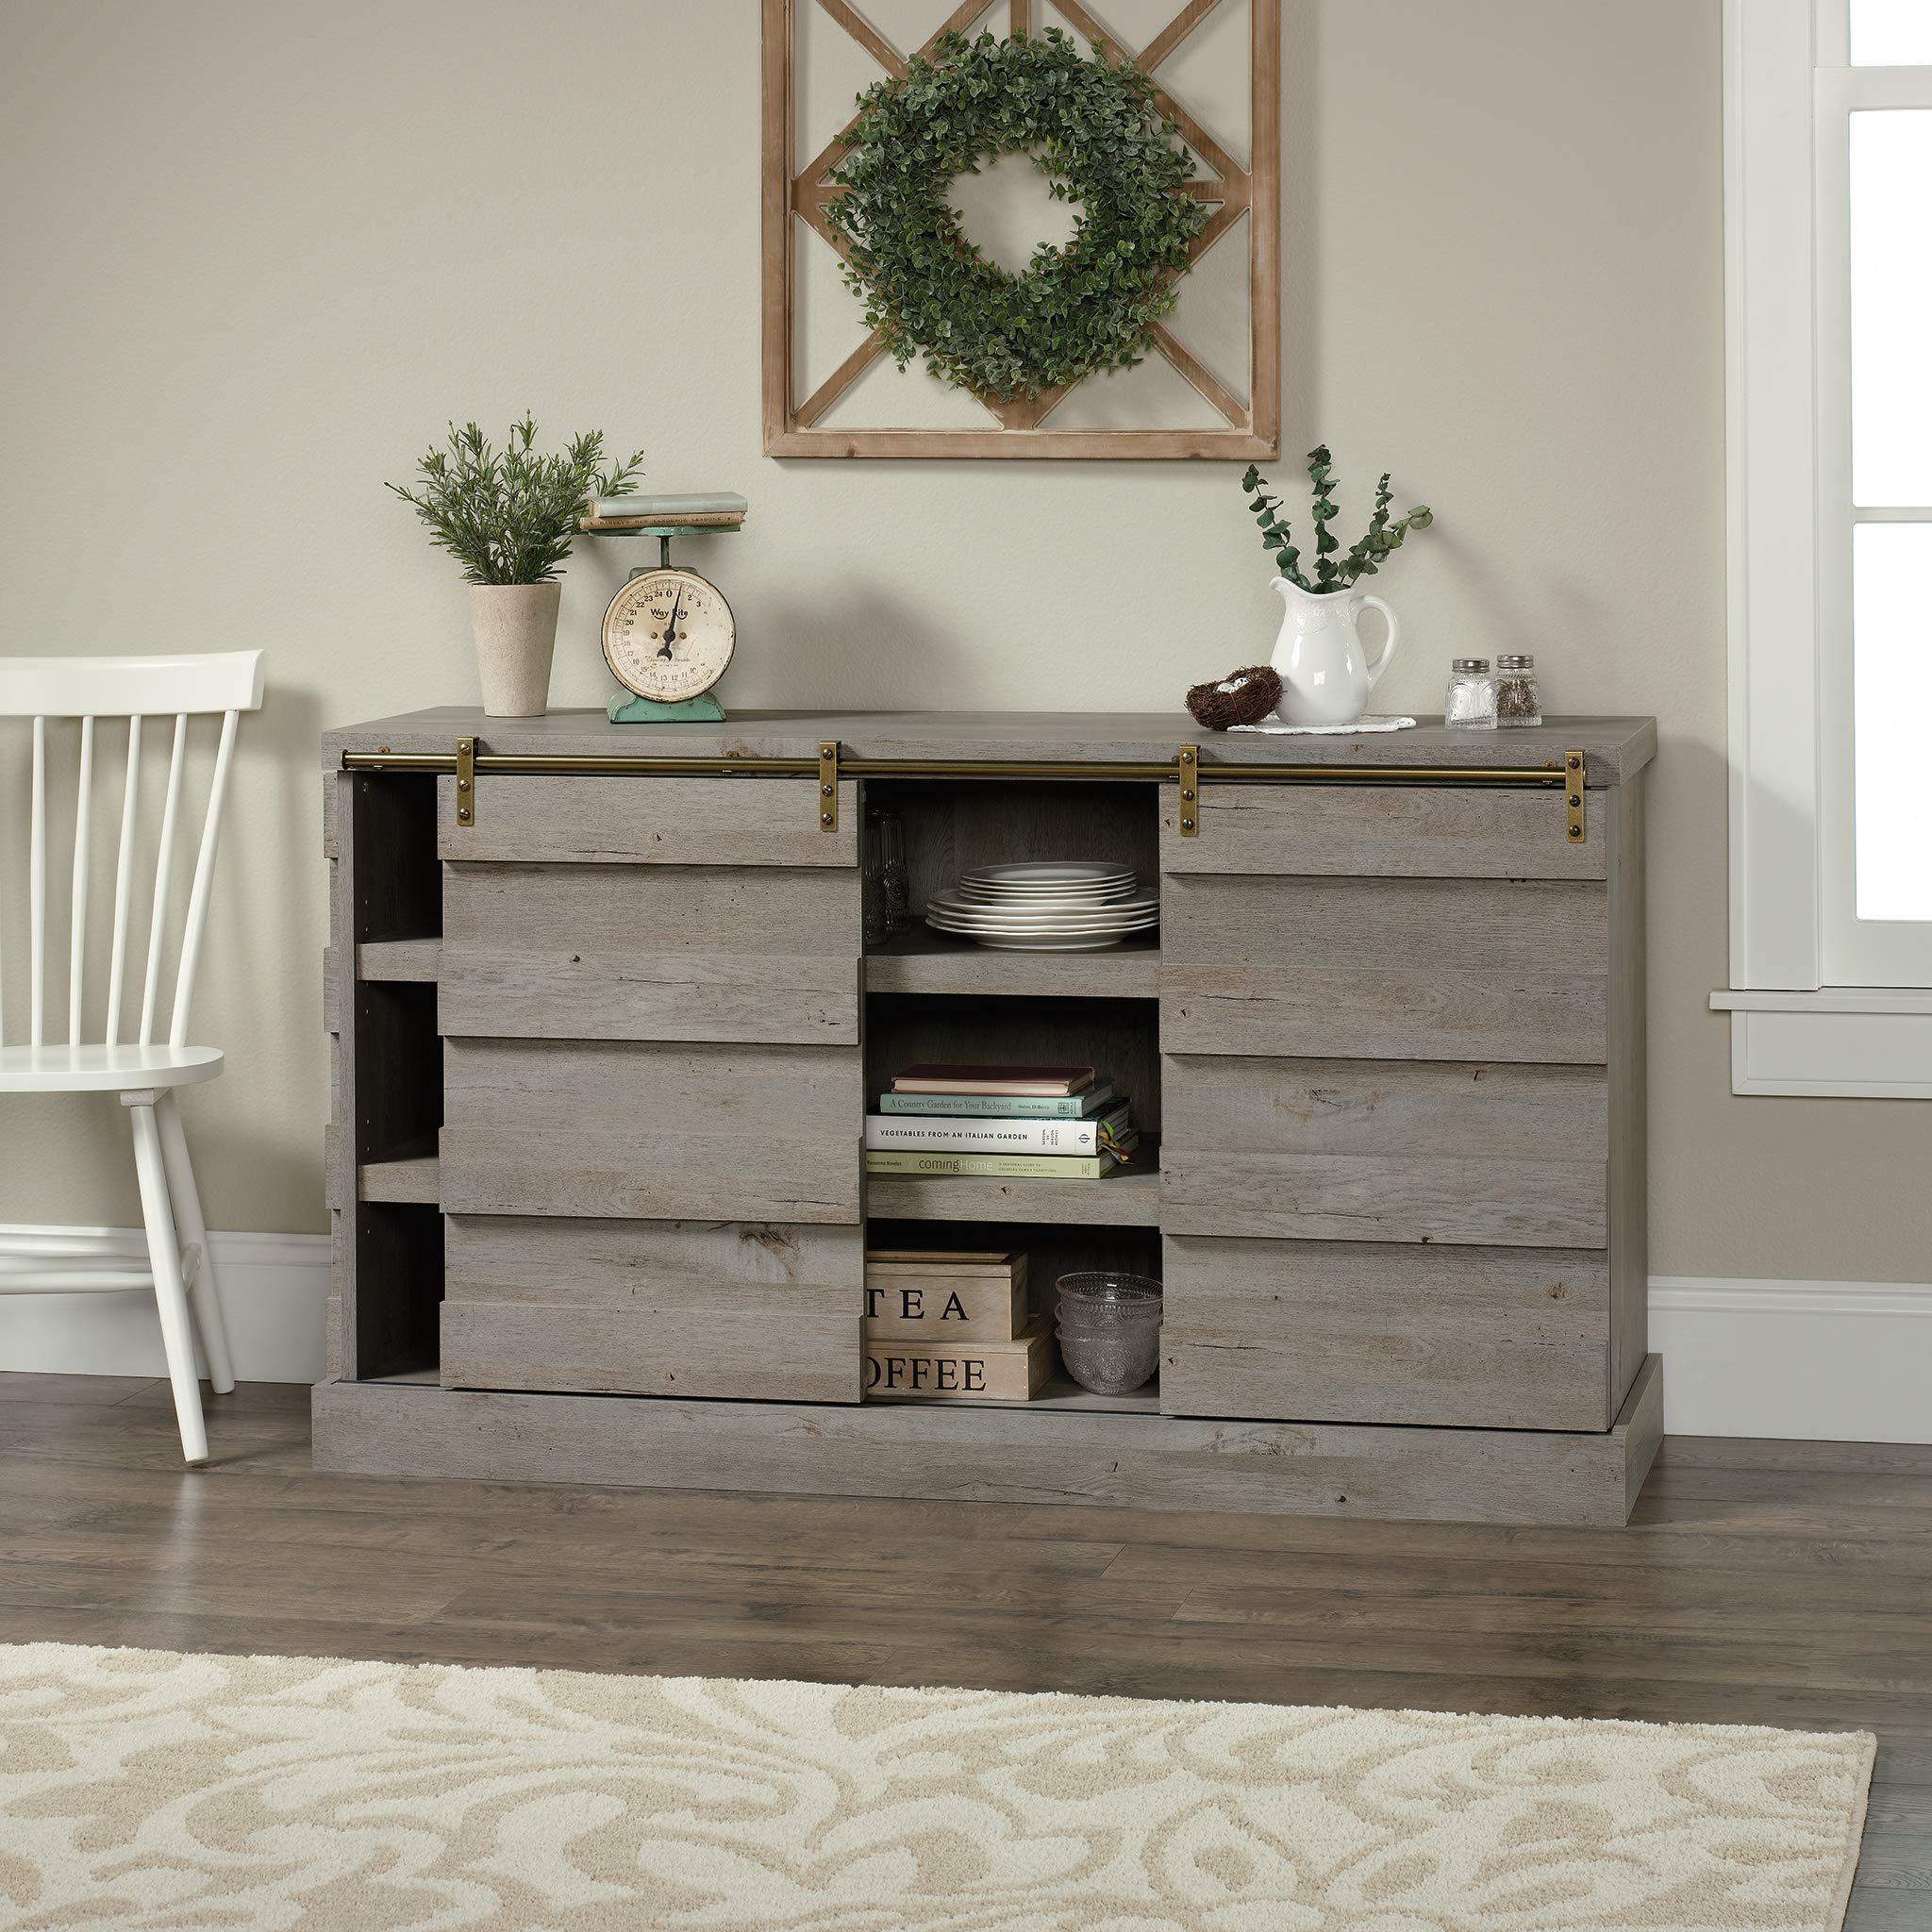 Sauder 422875 Cannery Bridge Credenza, Accommodates up to a 60'' TV Weighing 70 lbs. or Less, Mystic Oak Finish by Sauder (Image #3)